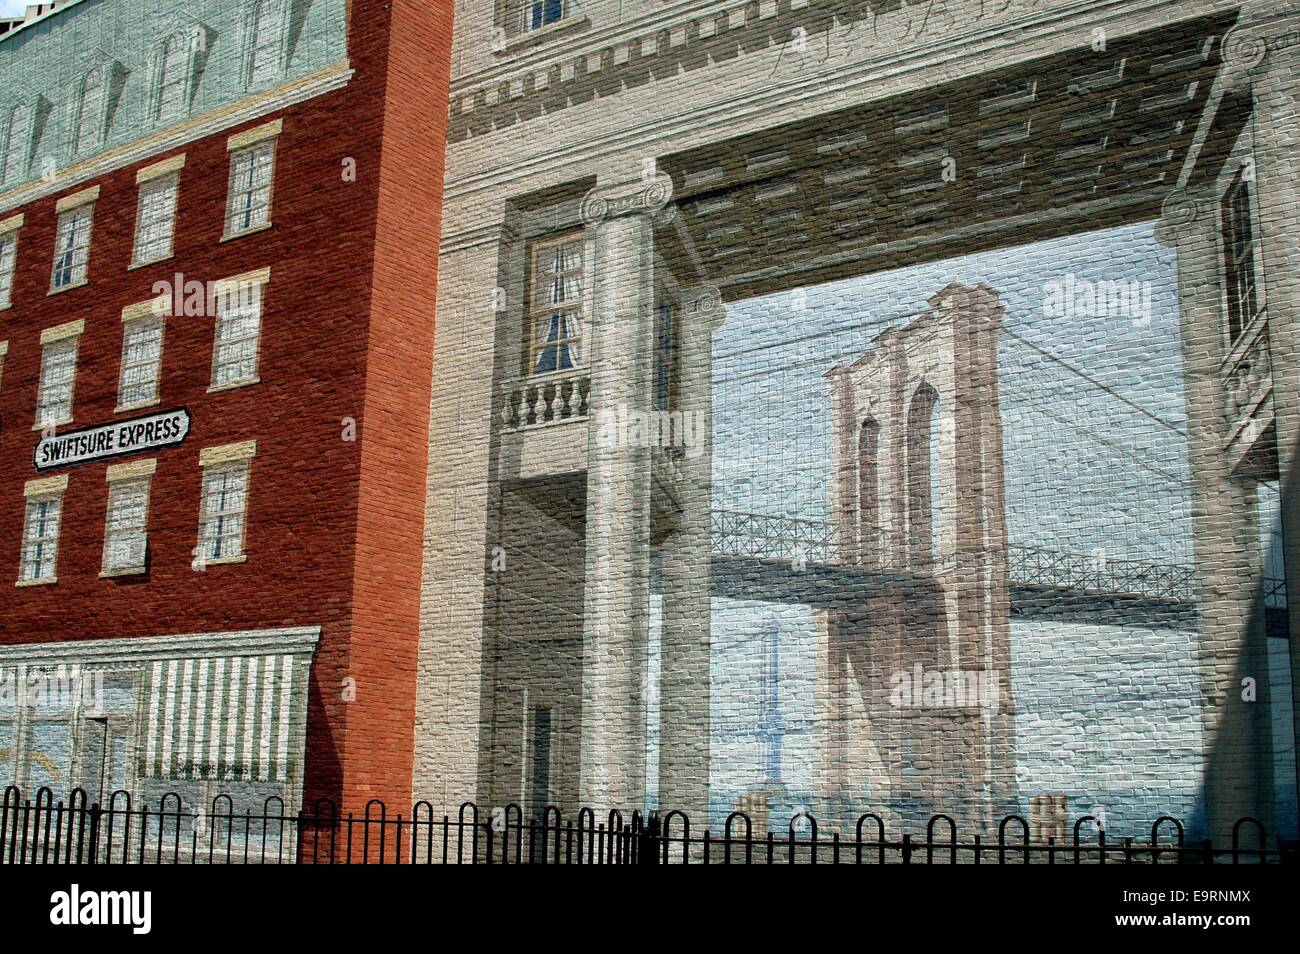 ... Trompe L Oeil Wall Mural Depicting The Brooklyn Bridge. Download